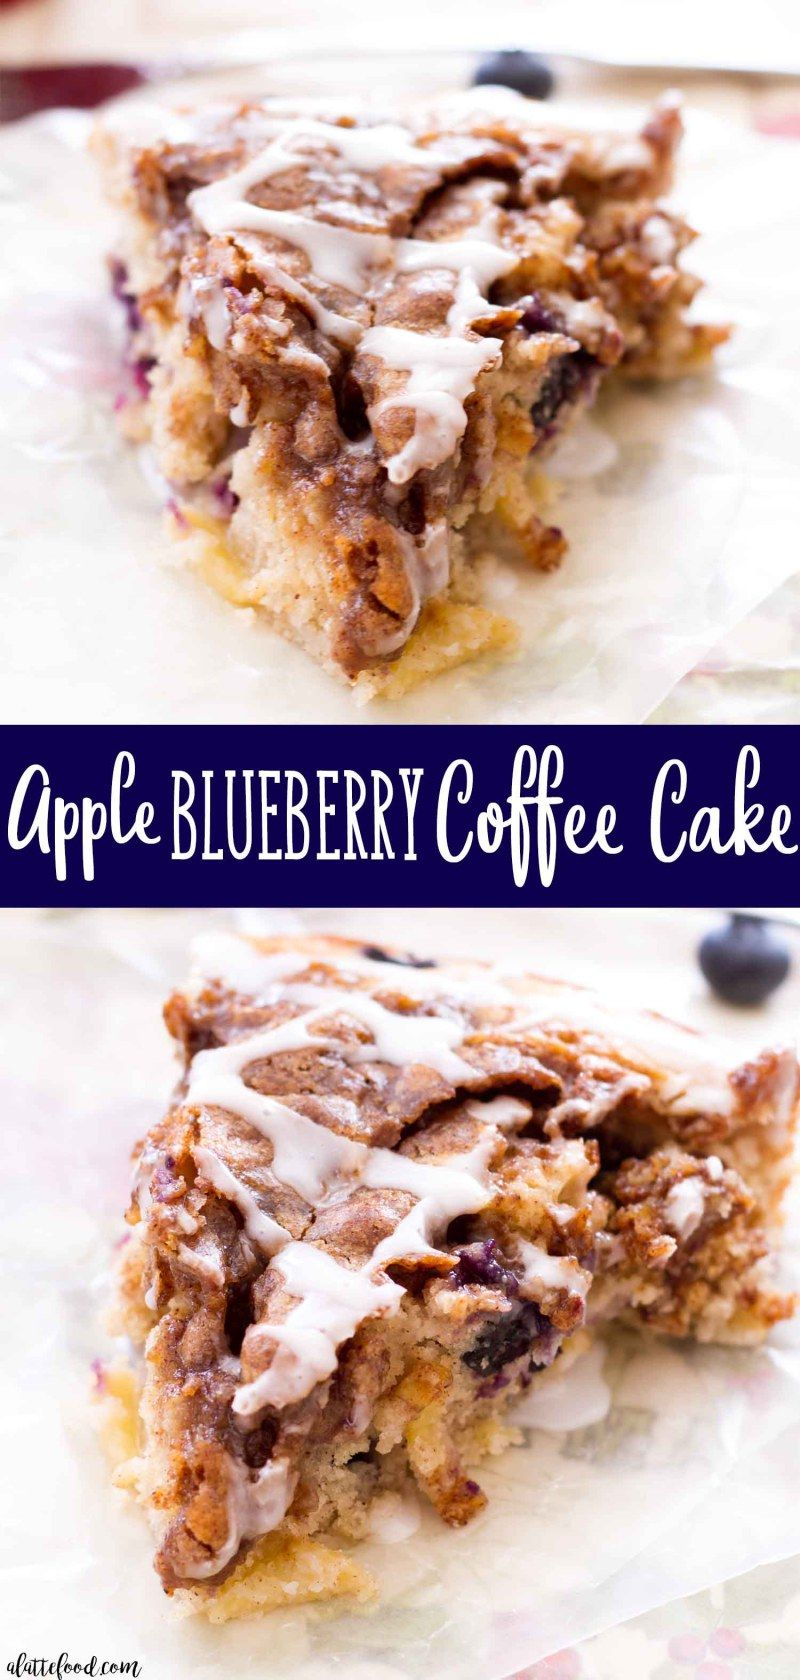 This homemade Apple Blueberry Coffee Cake is love at first